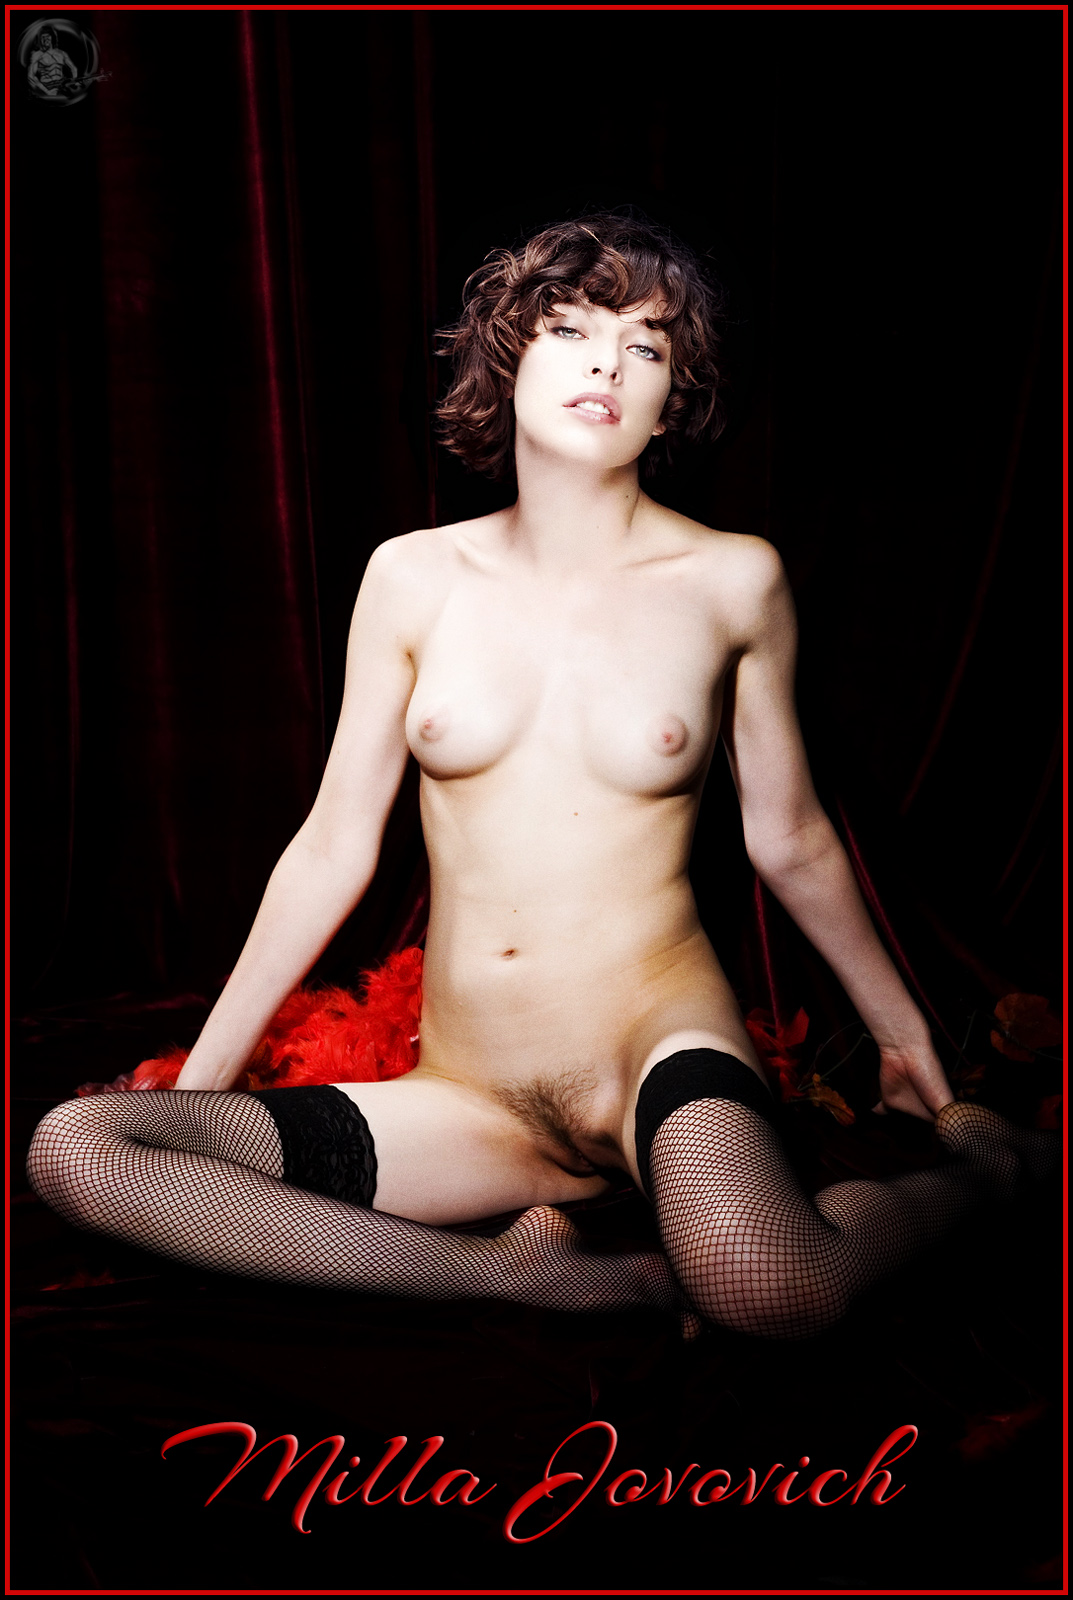 from Alex milla jovovich nude in playboy